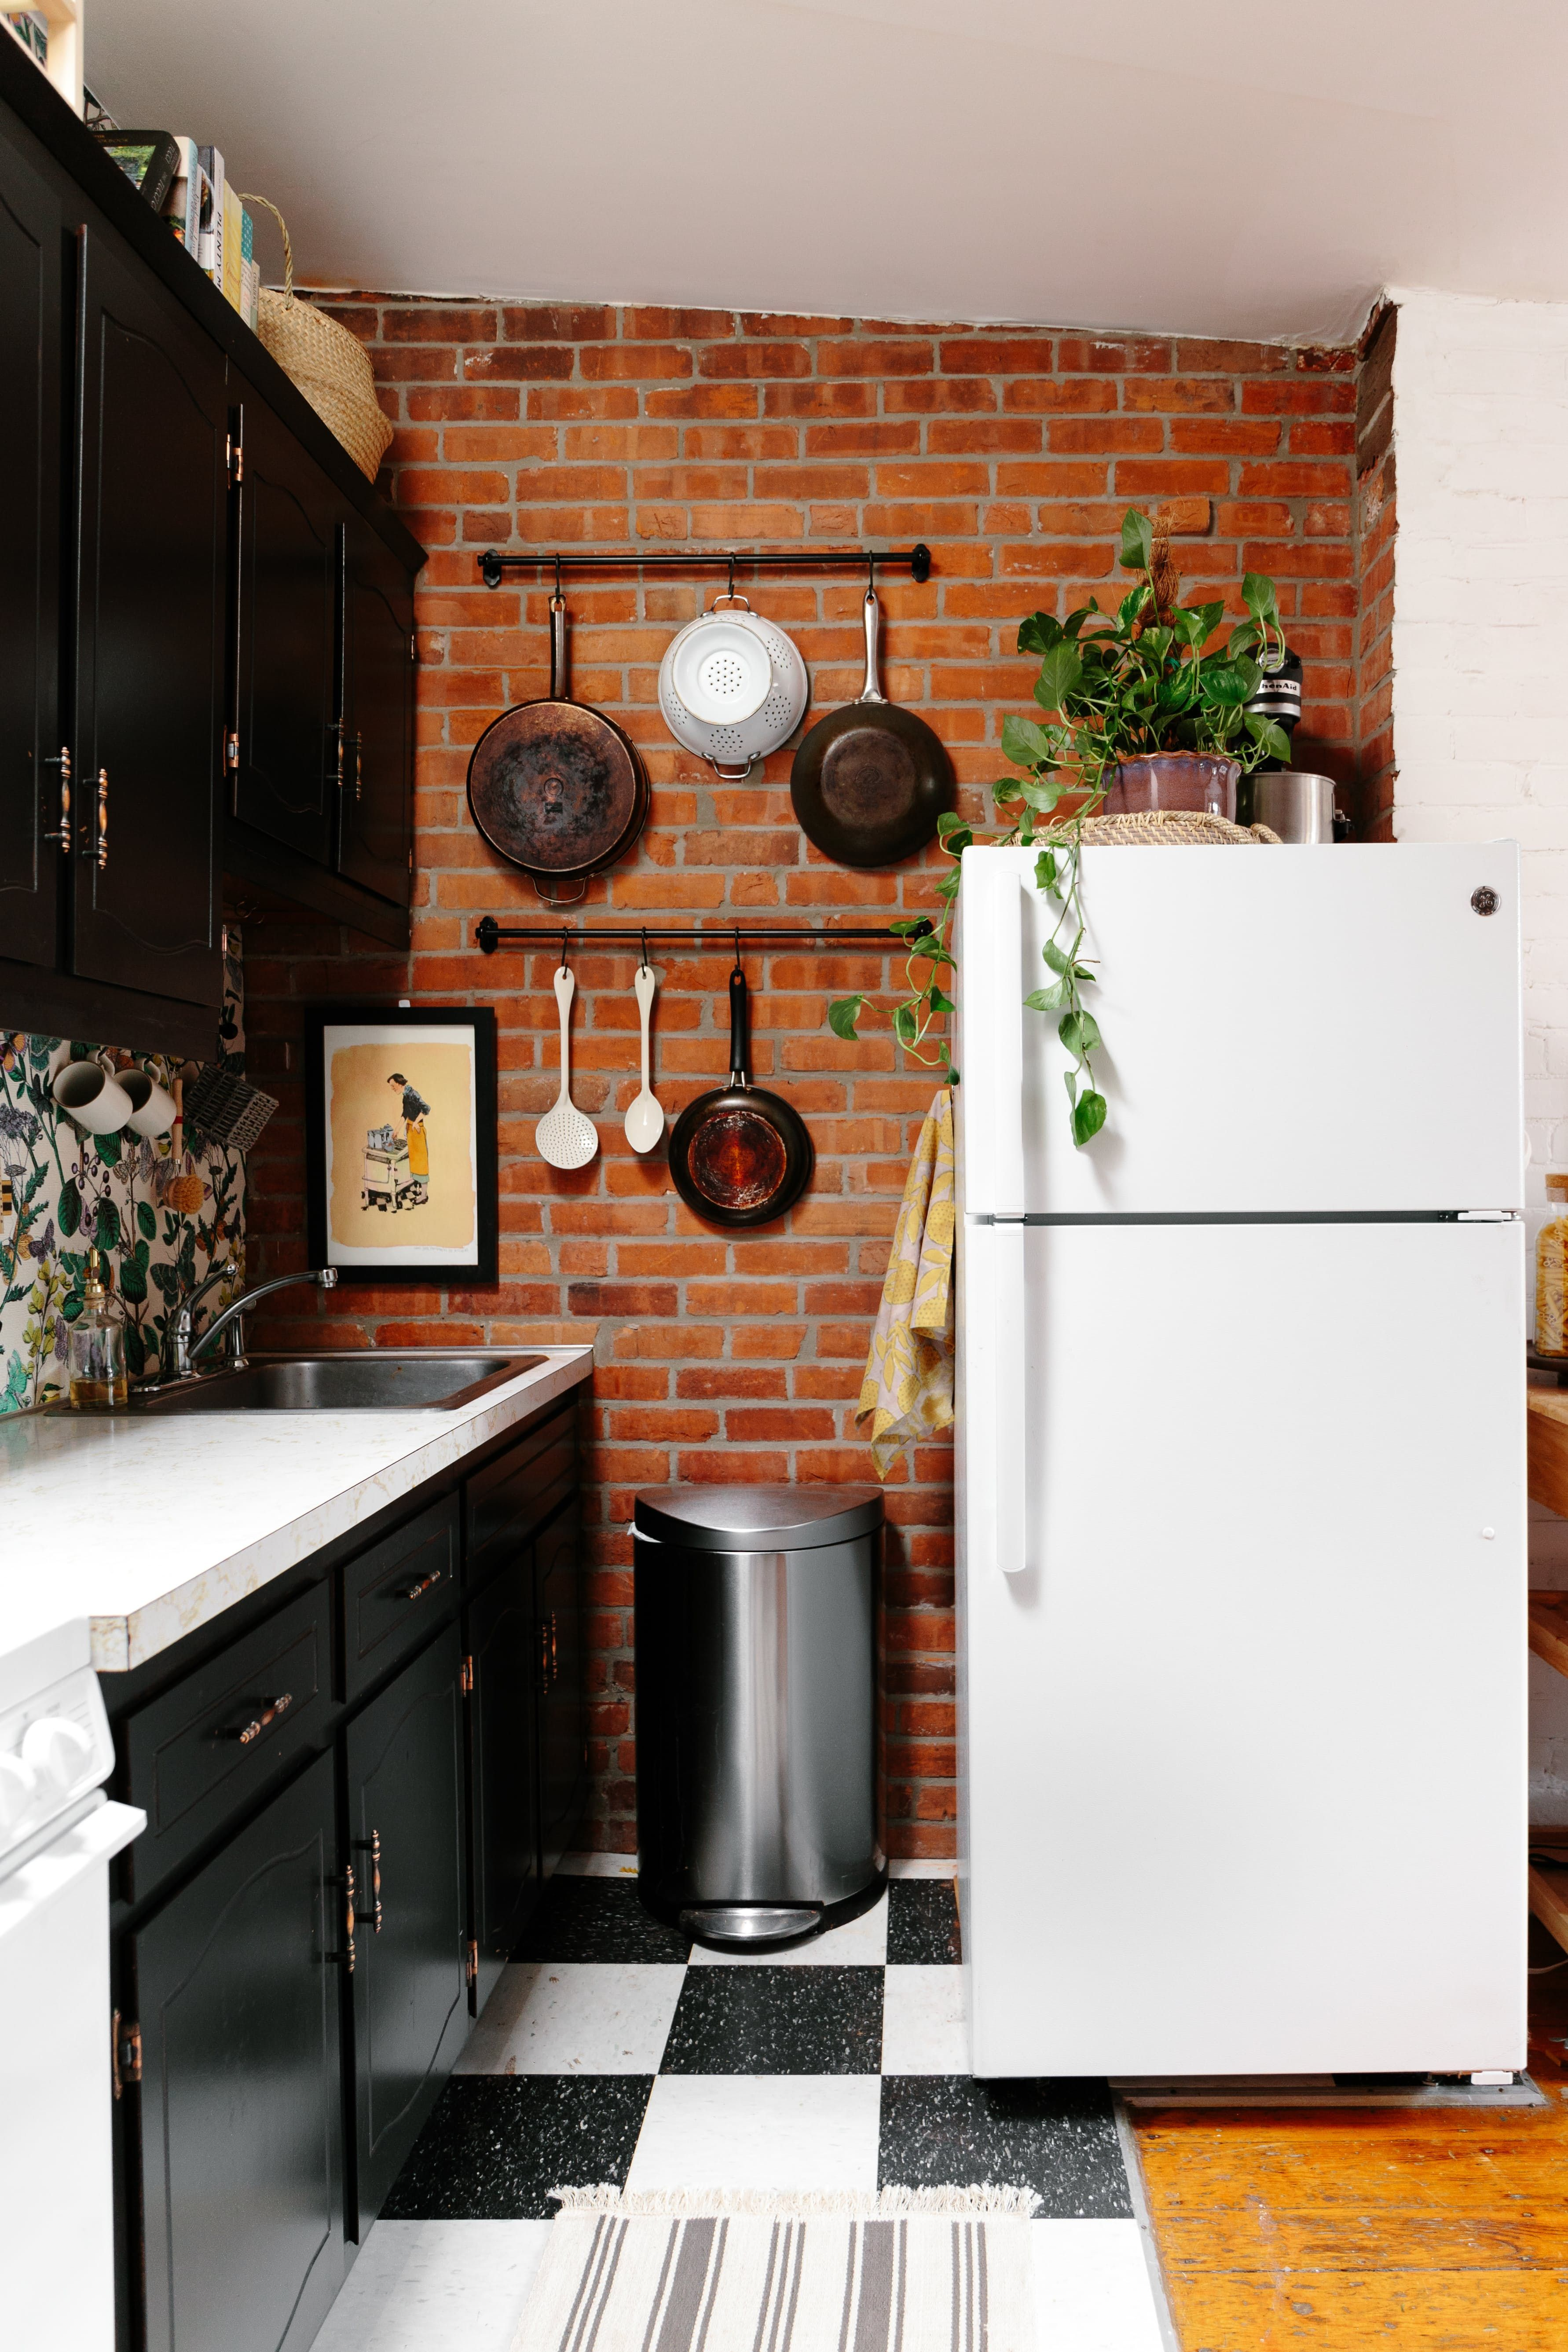 300 Later This Rental Kitchen Is No Longer Recognizable Small Apartment Kitchen Rental